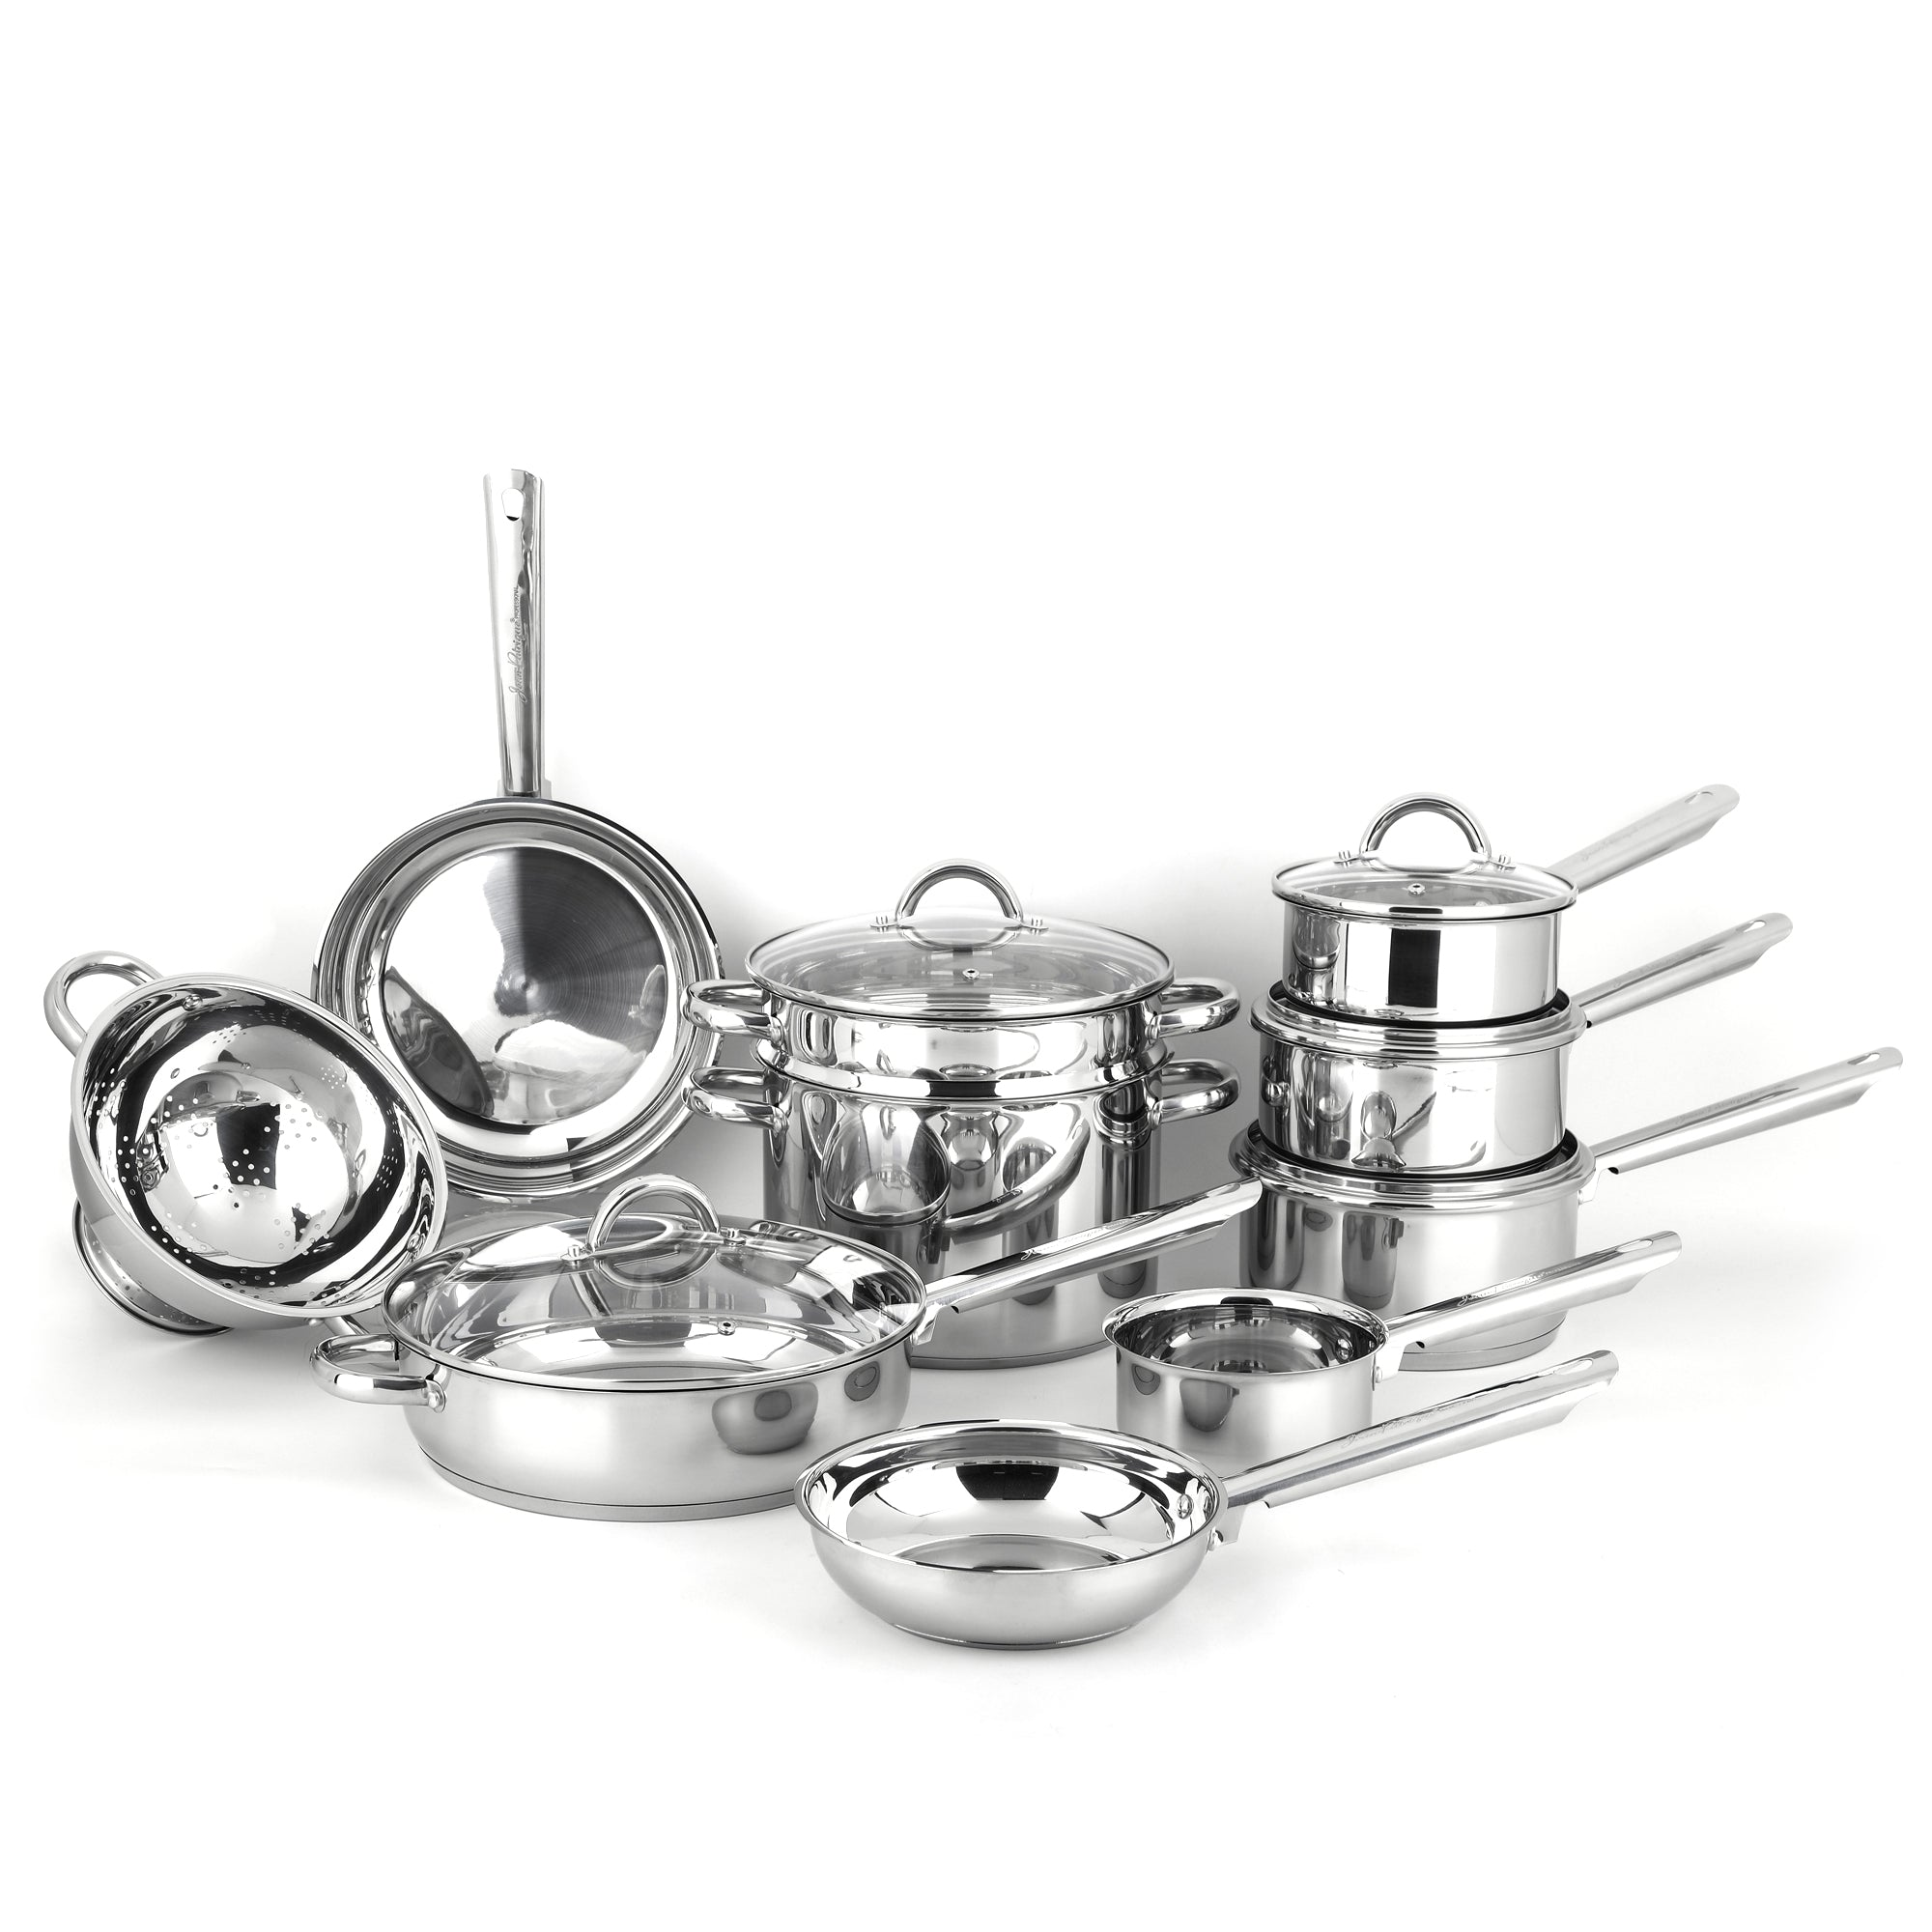 Professional Cookware Set - 15 Piece